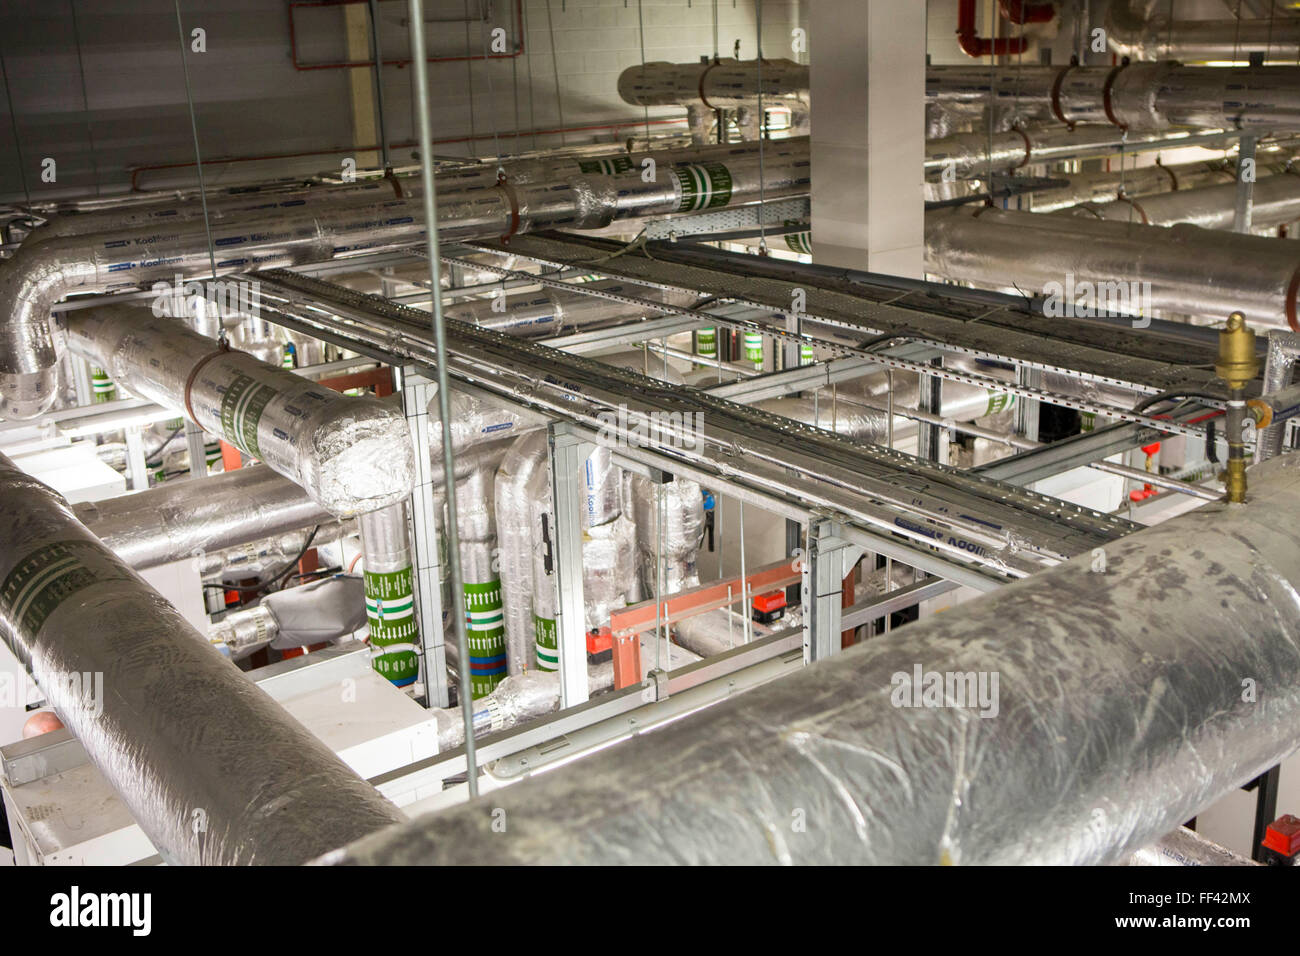 Foil insulated heating system pipes, inside the boiler room of a ...